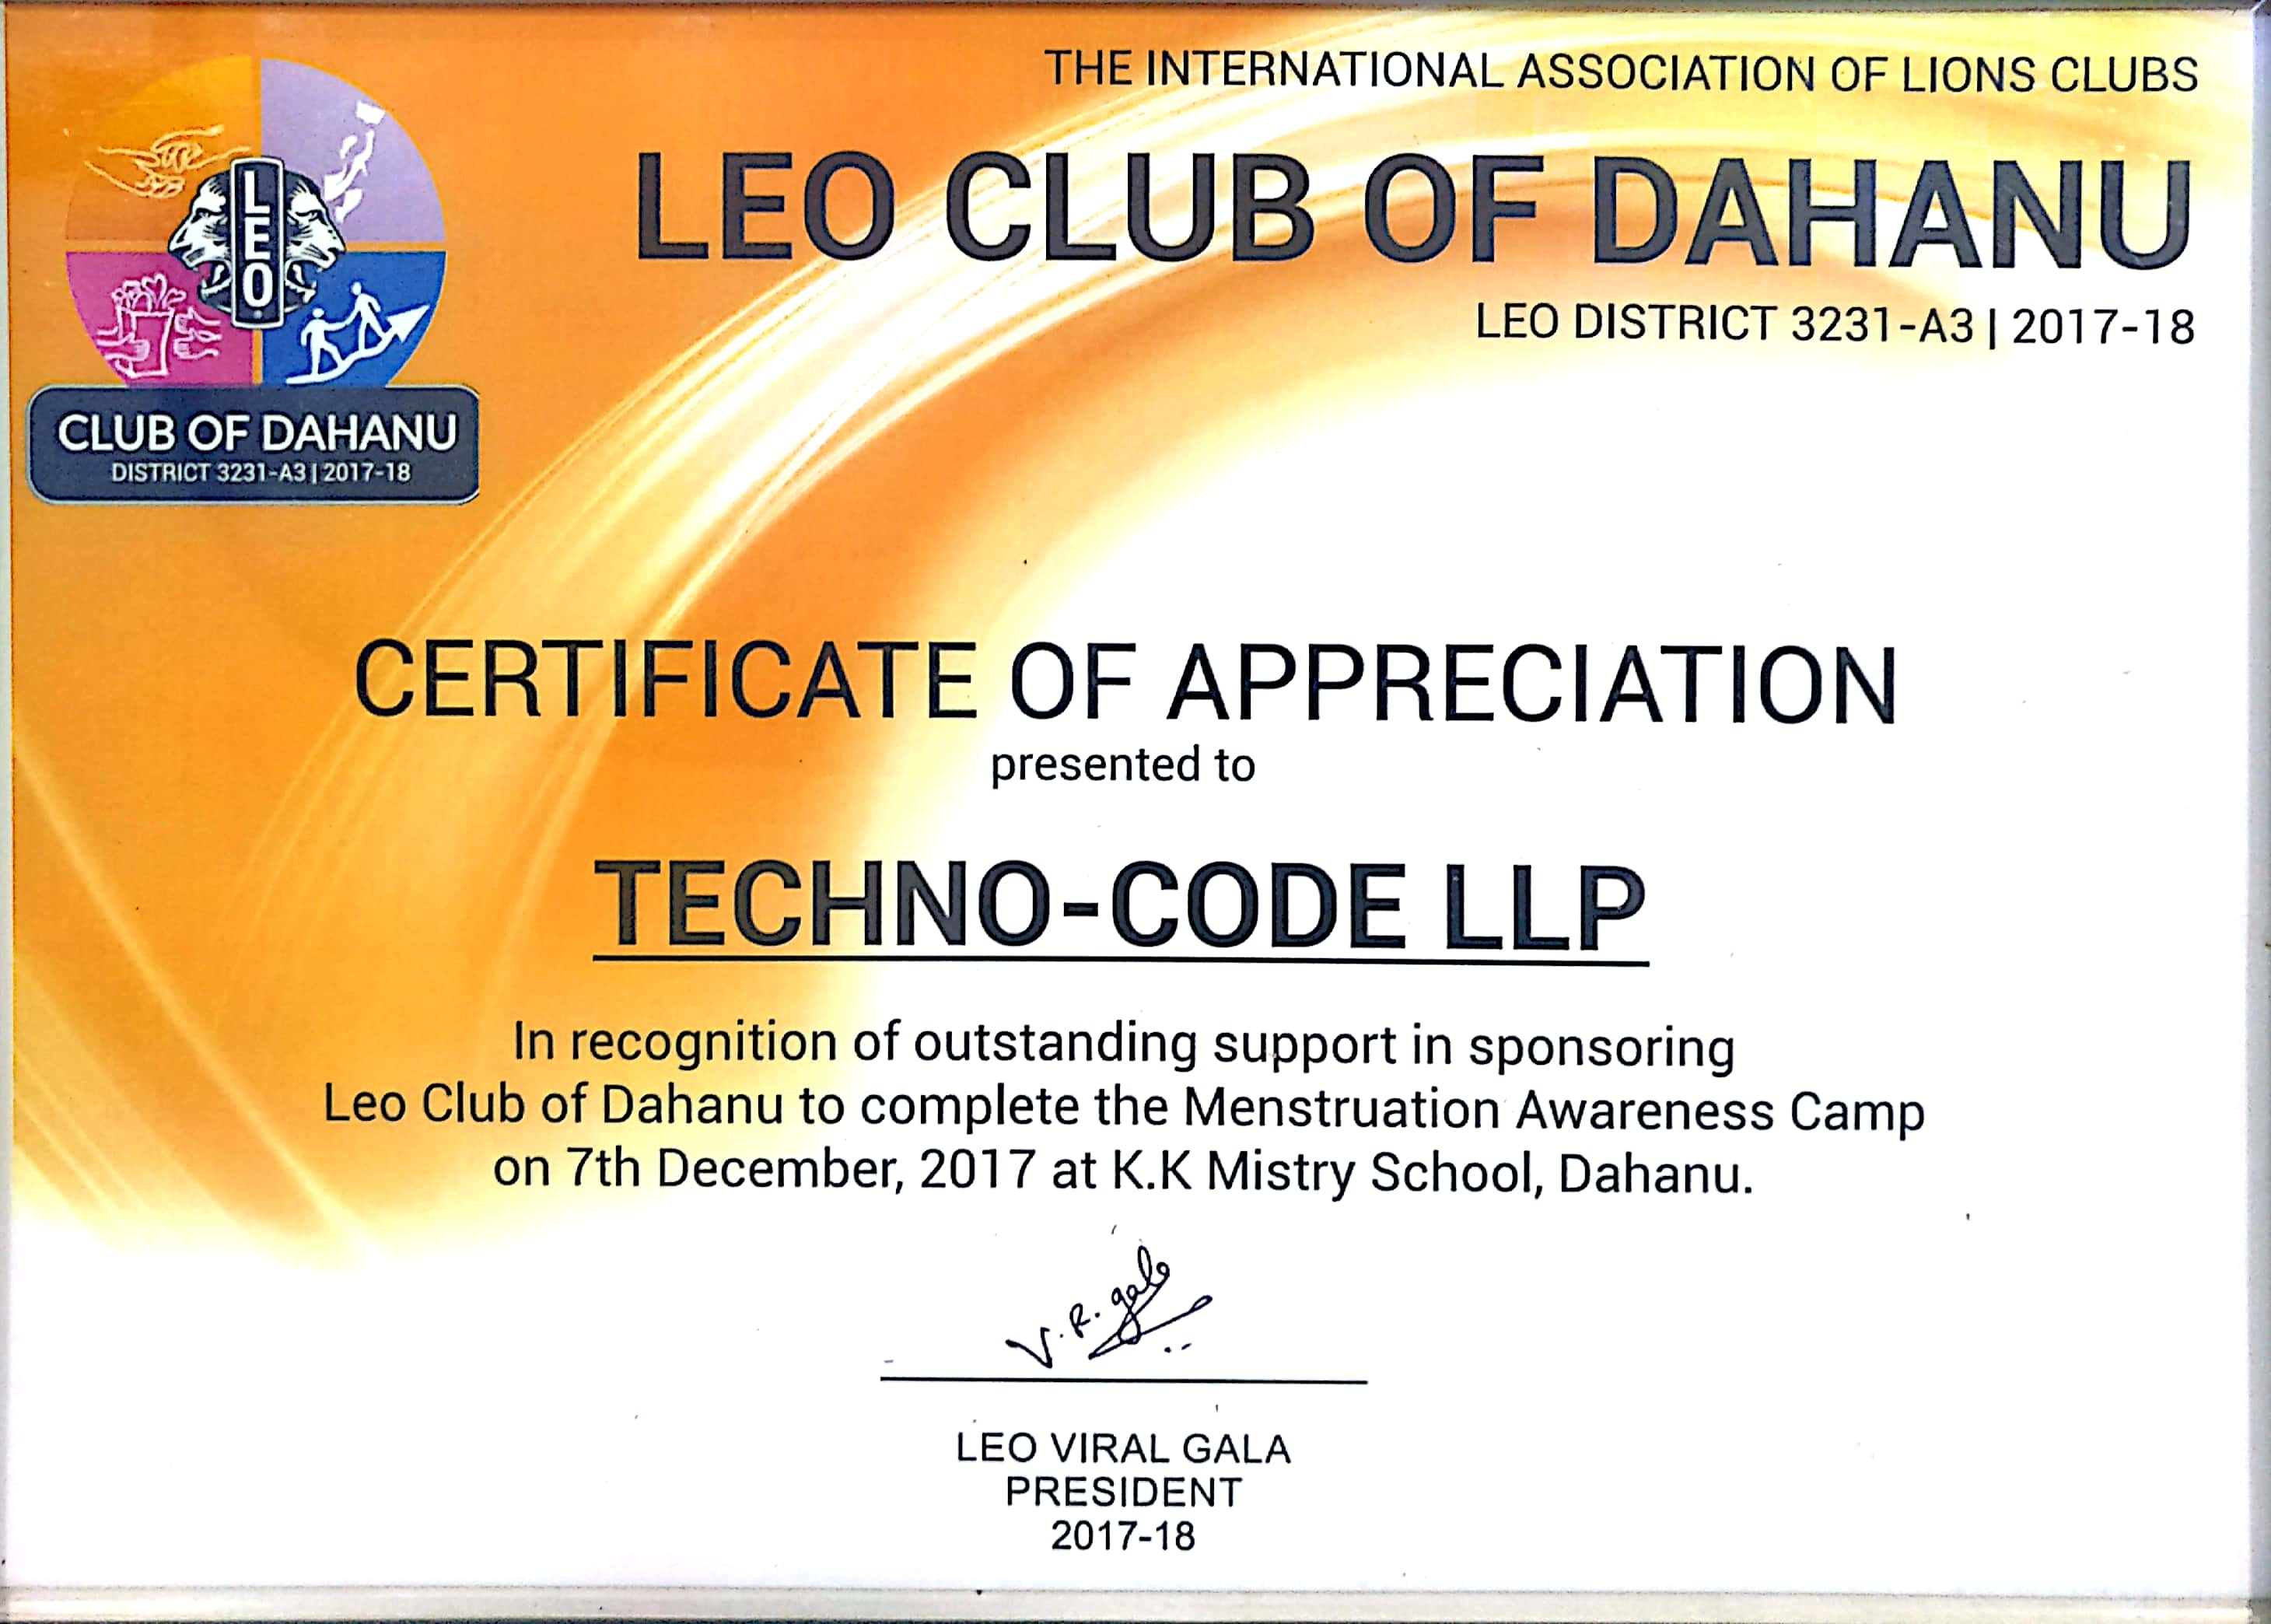 Appreciation Letter from Leo Club